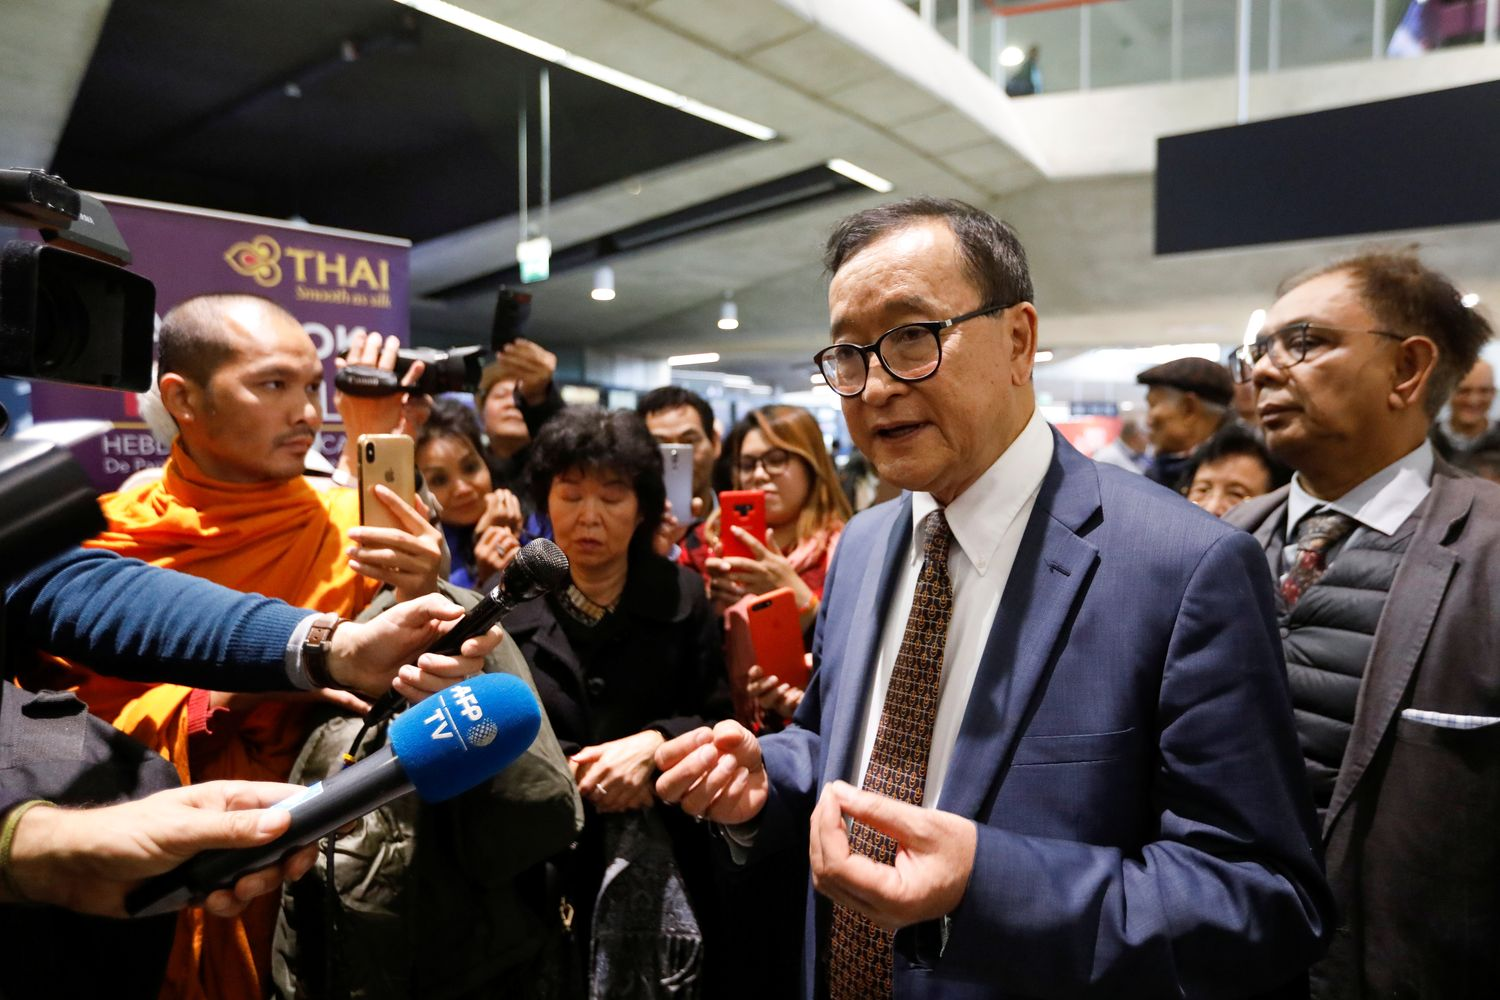 Cambodia's self-exiled opposition party founder Sam Rainsy, who has vowed to return to his home country, talks to supporters after being prevented from checking-in for a flight from Paris to Bangkok at Roissy Airport in Paris on Thursday. (Reuters photo)